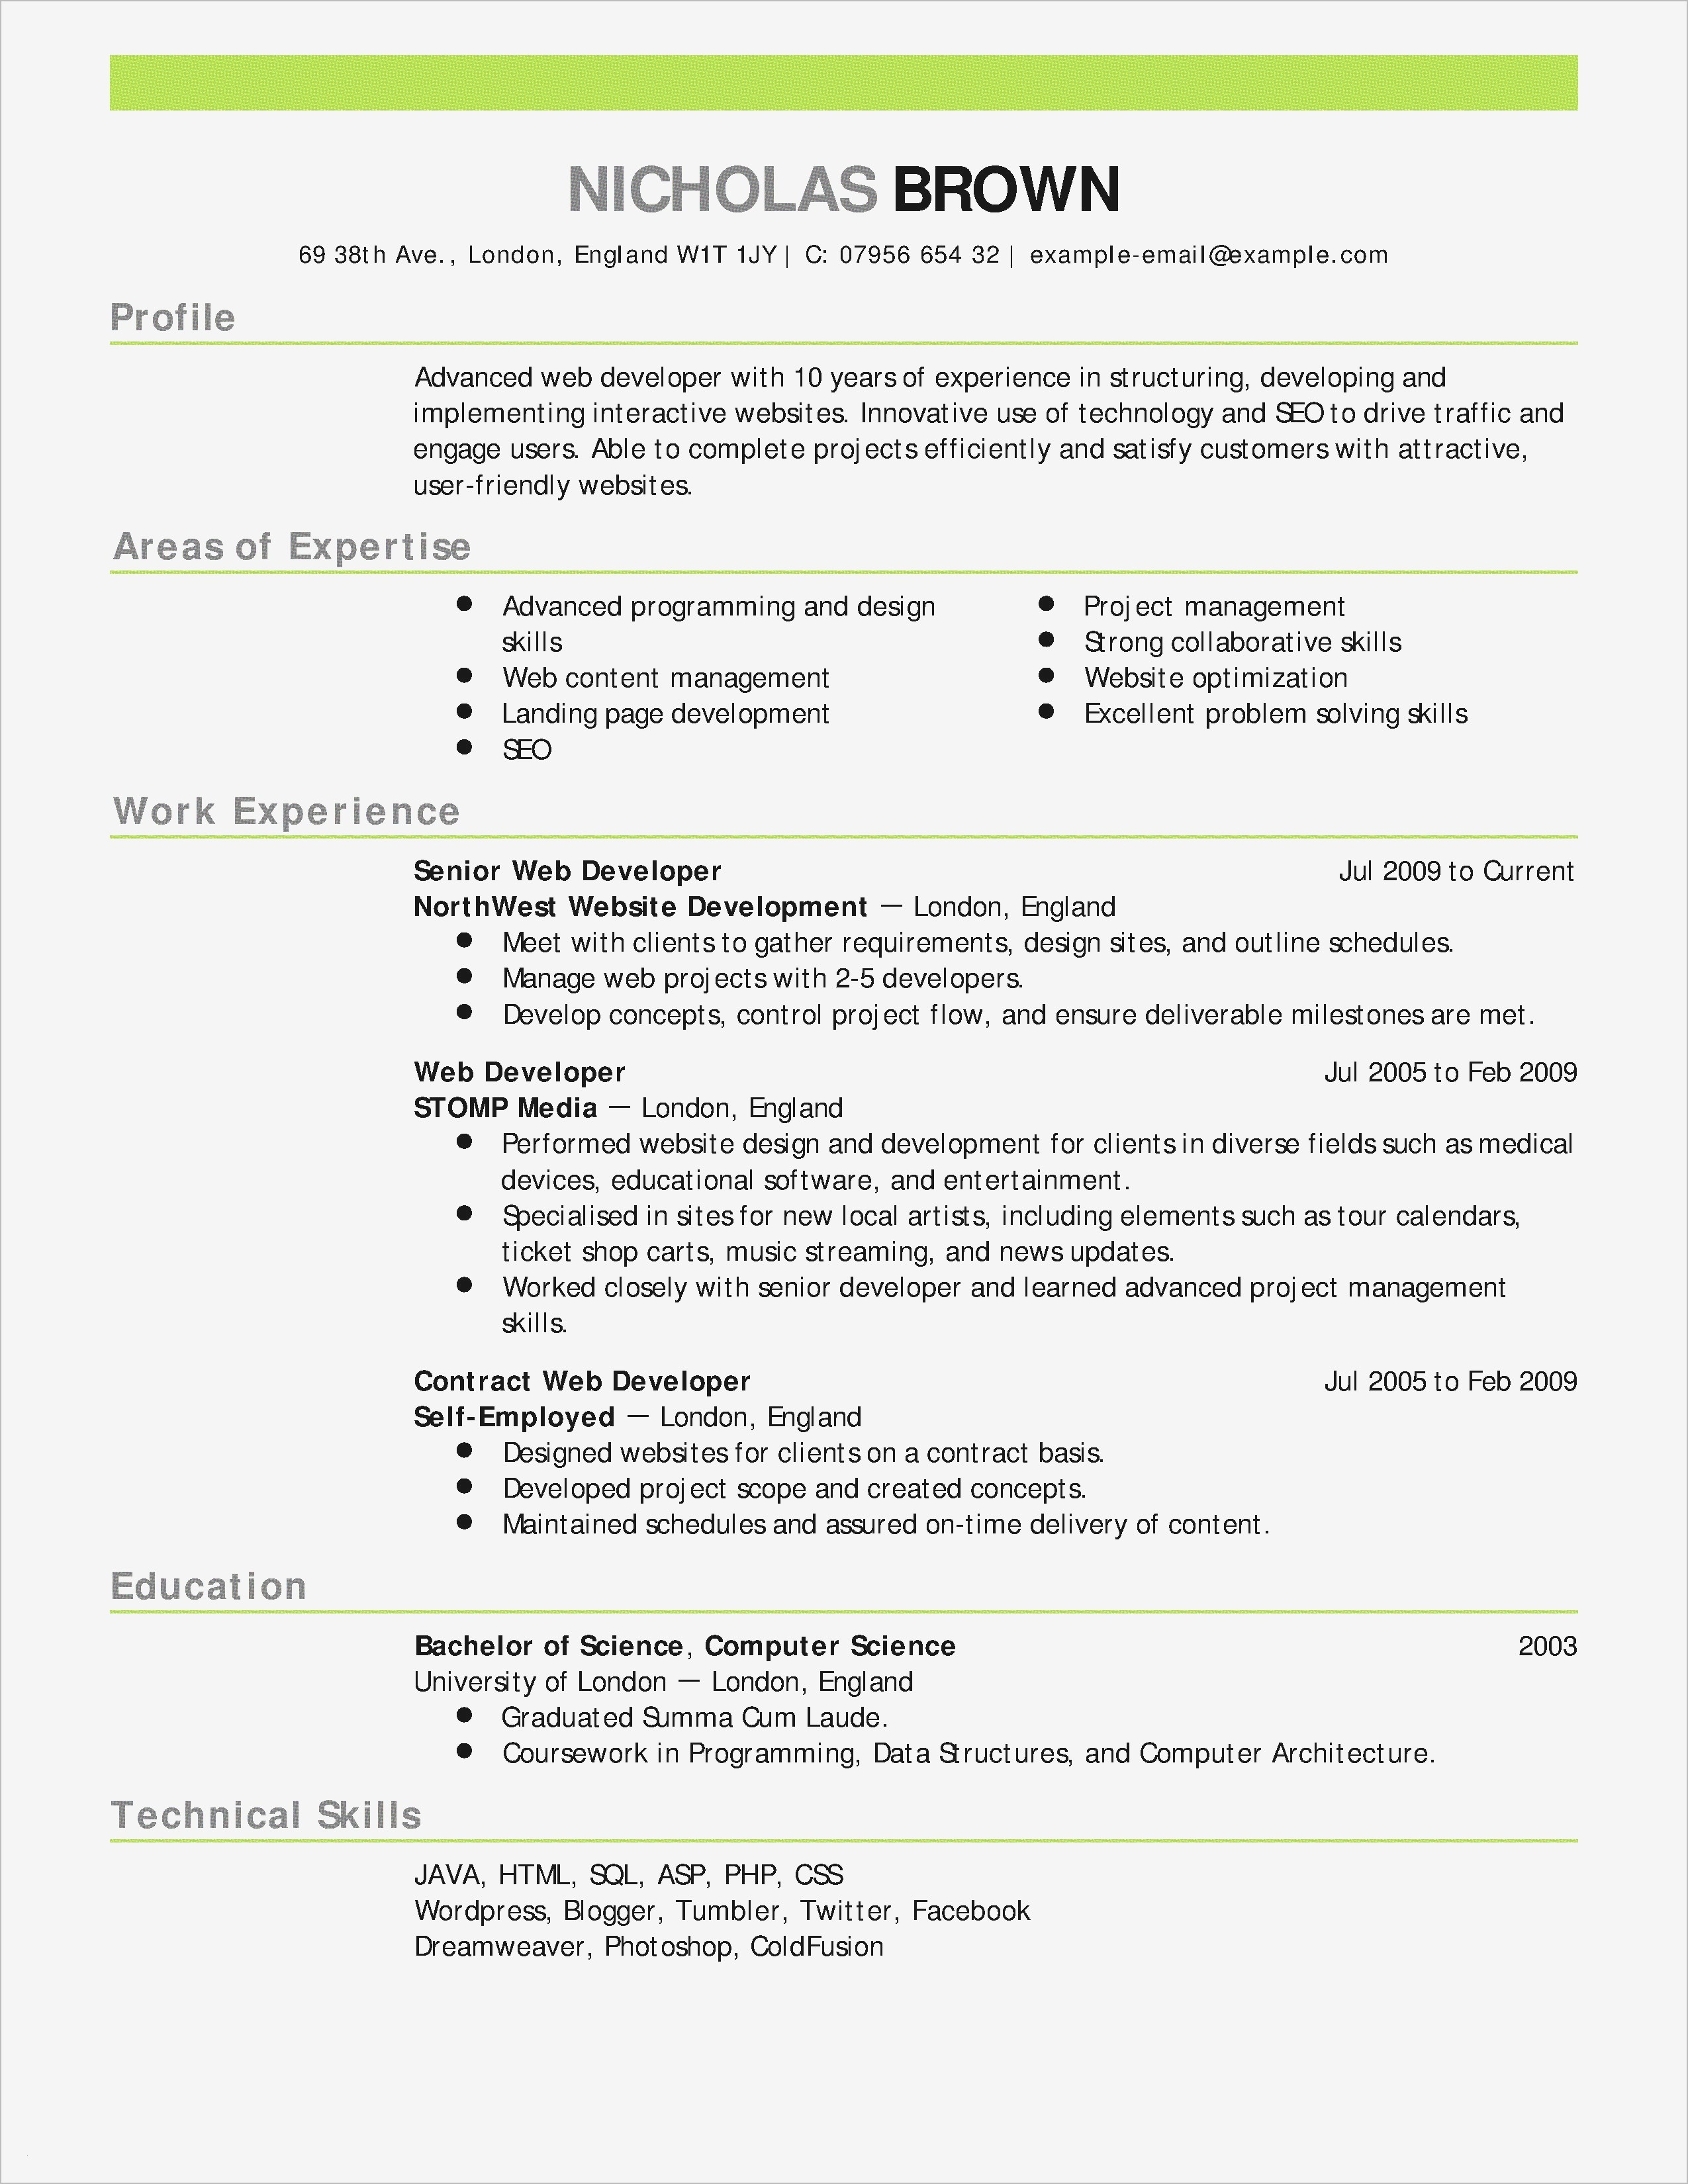 Creative Cover Letter Template Word Free - Resume Sample Word Doc Sfonthebridge Sfonthebridge